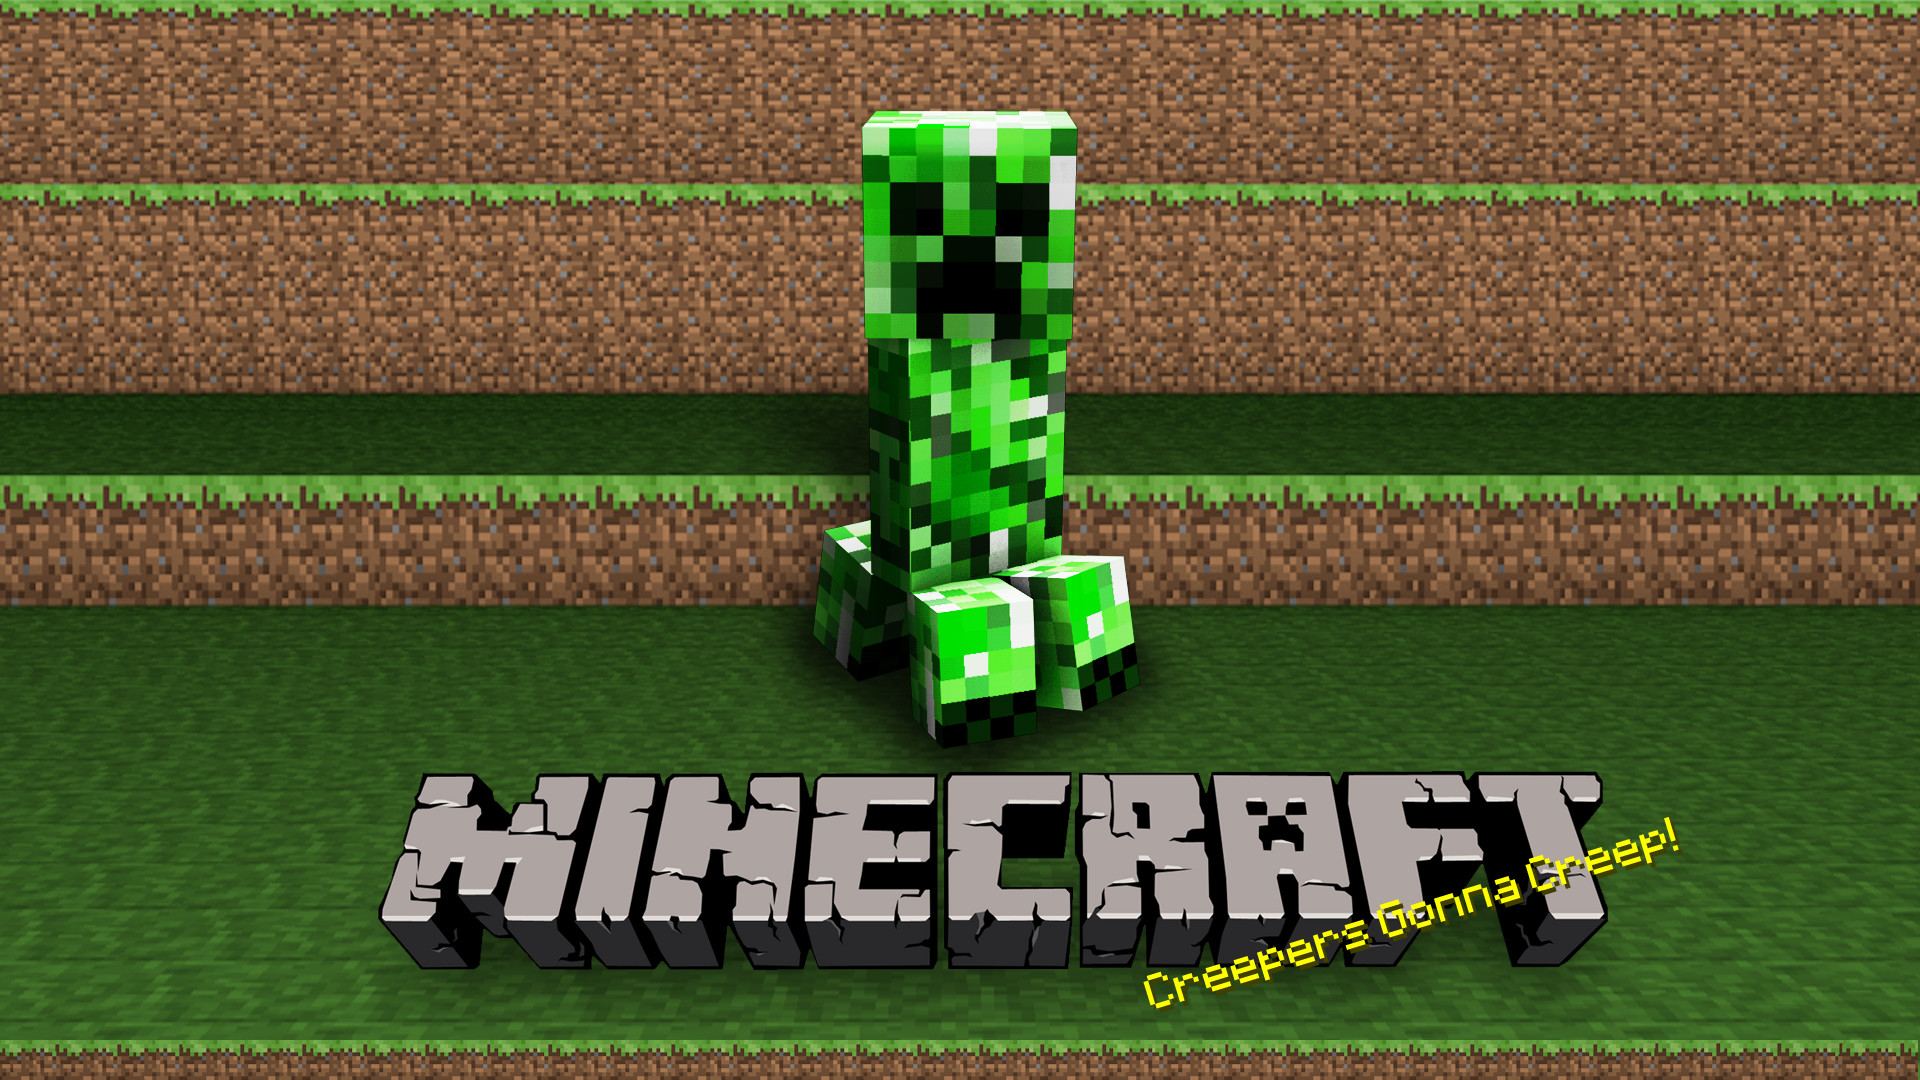 Res: 1920x1080, Minecraft Creeper Wallpapers Free